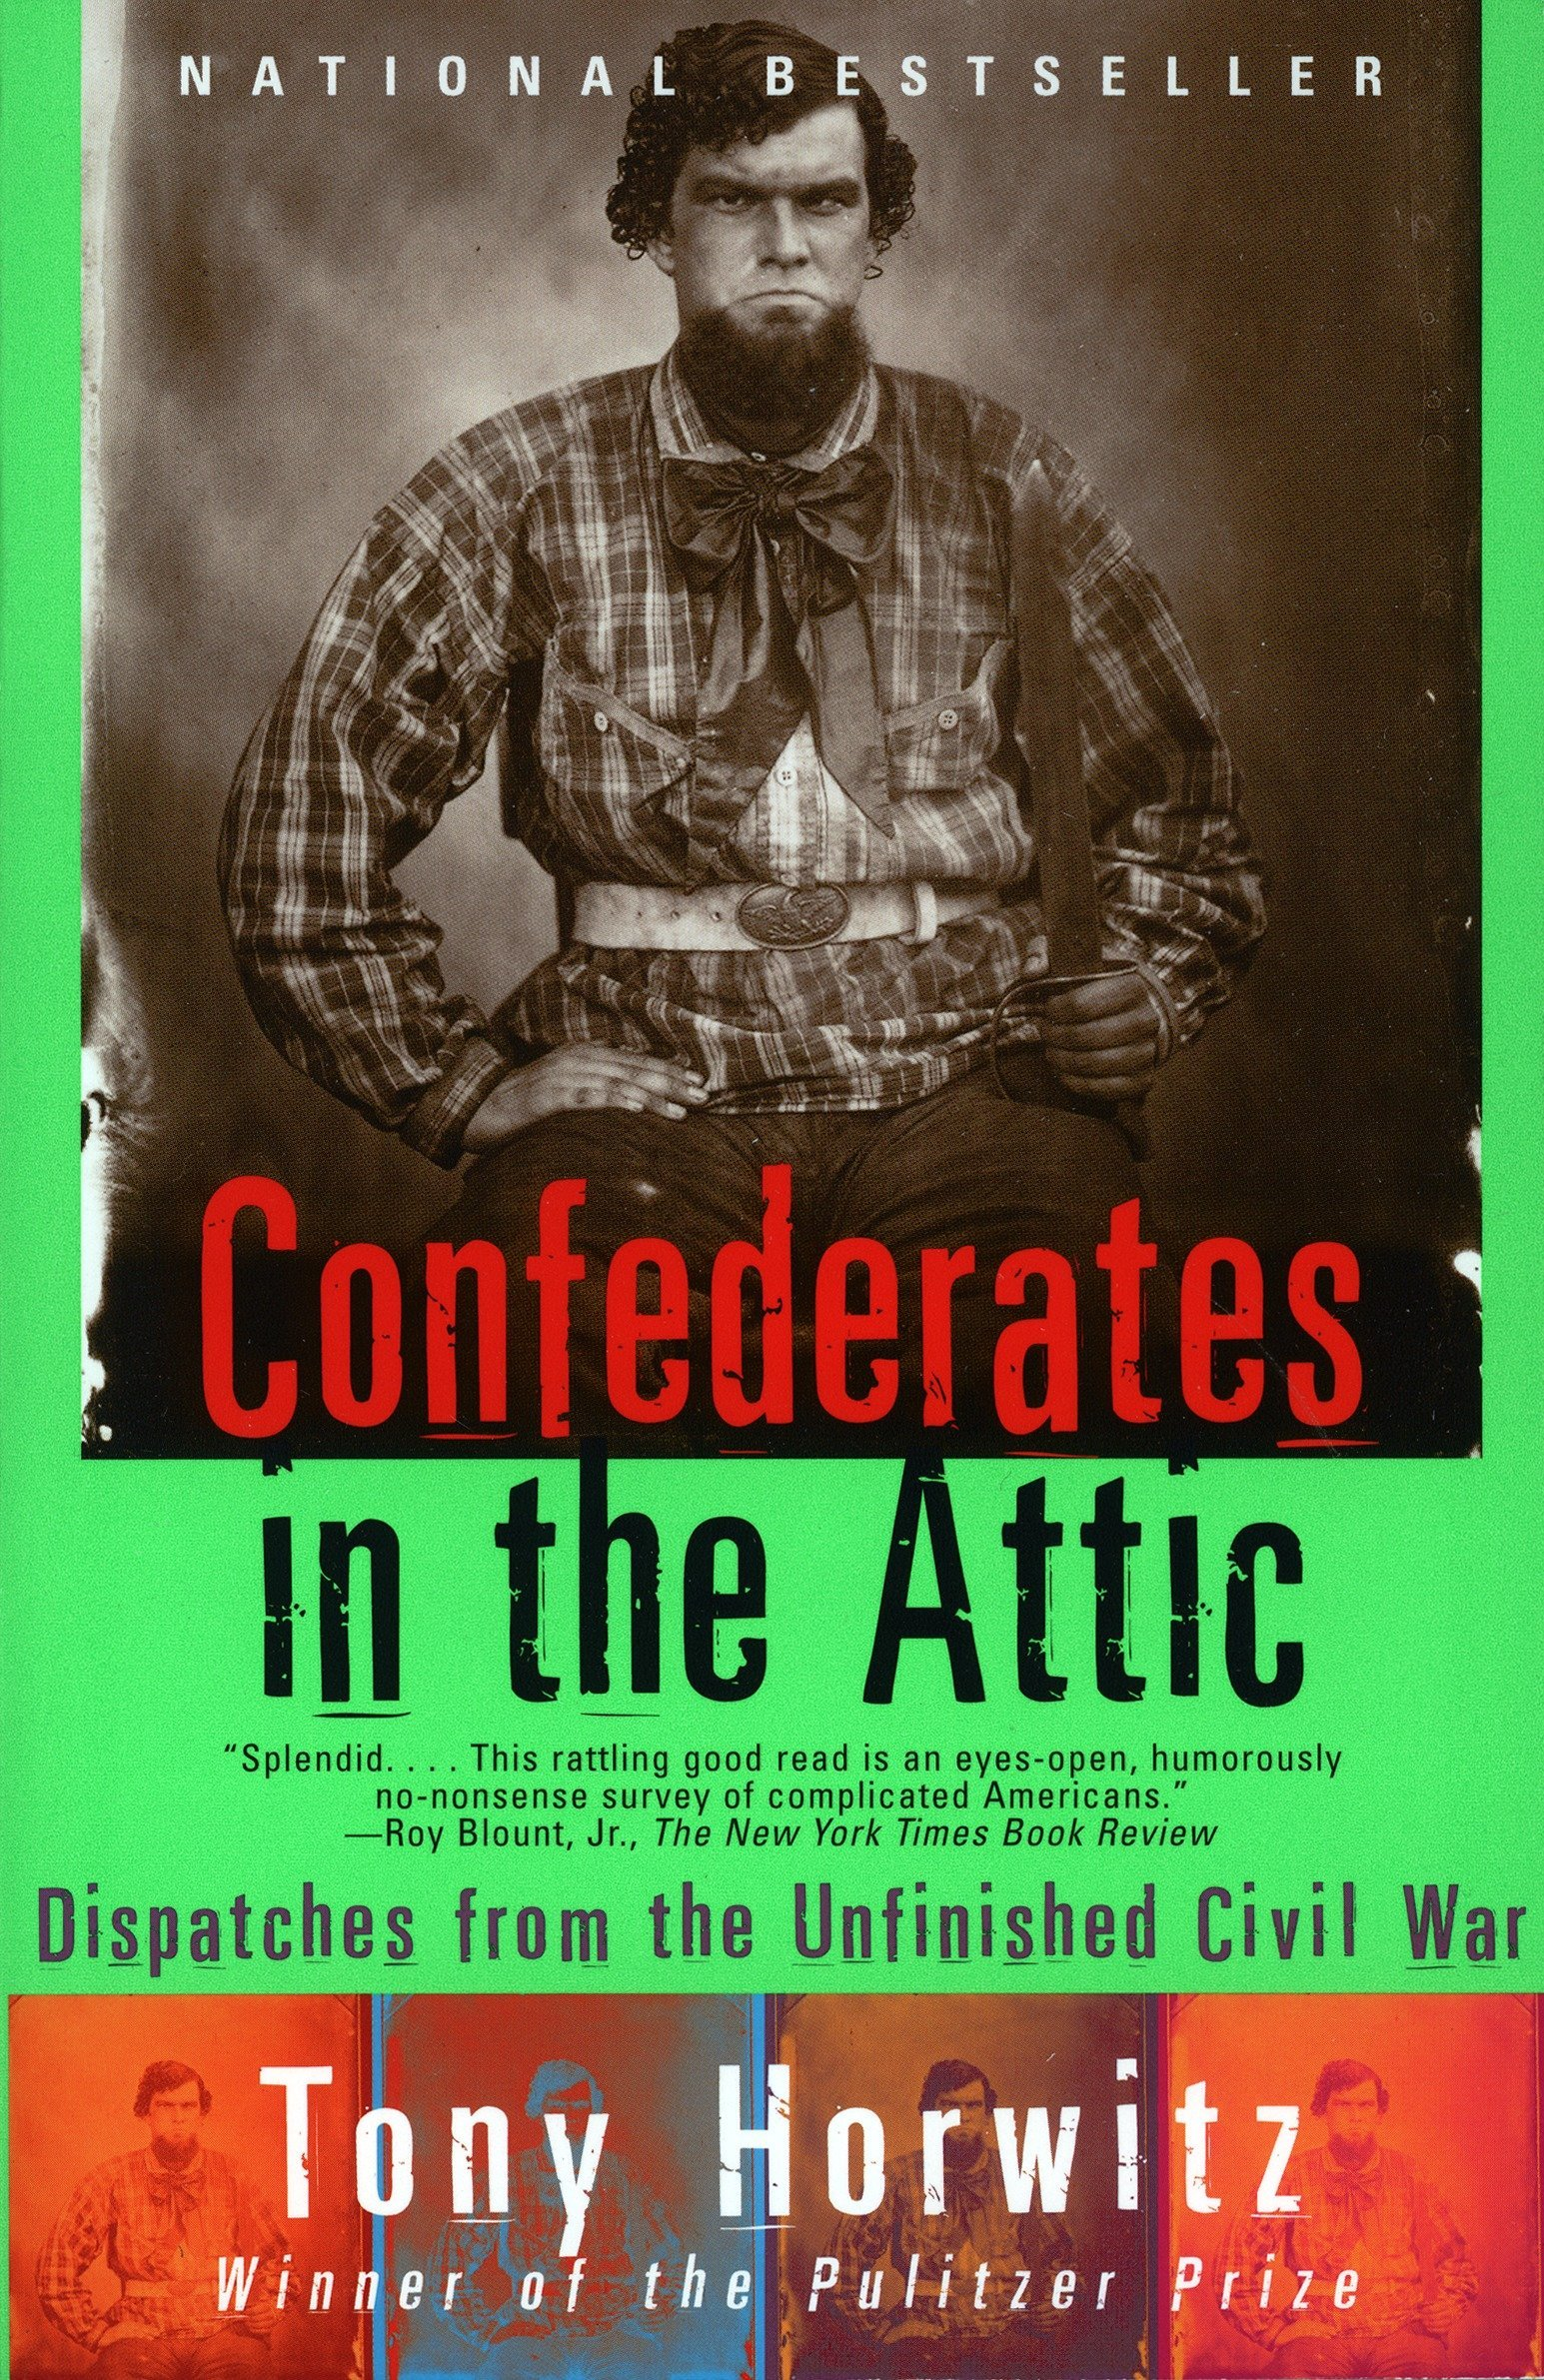 Image result for confederates in the attic book image